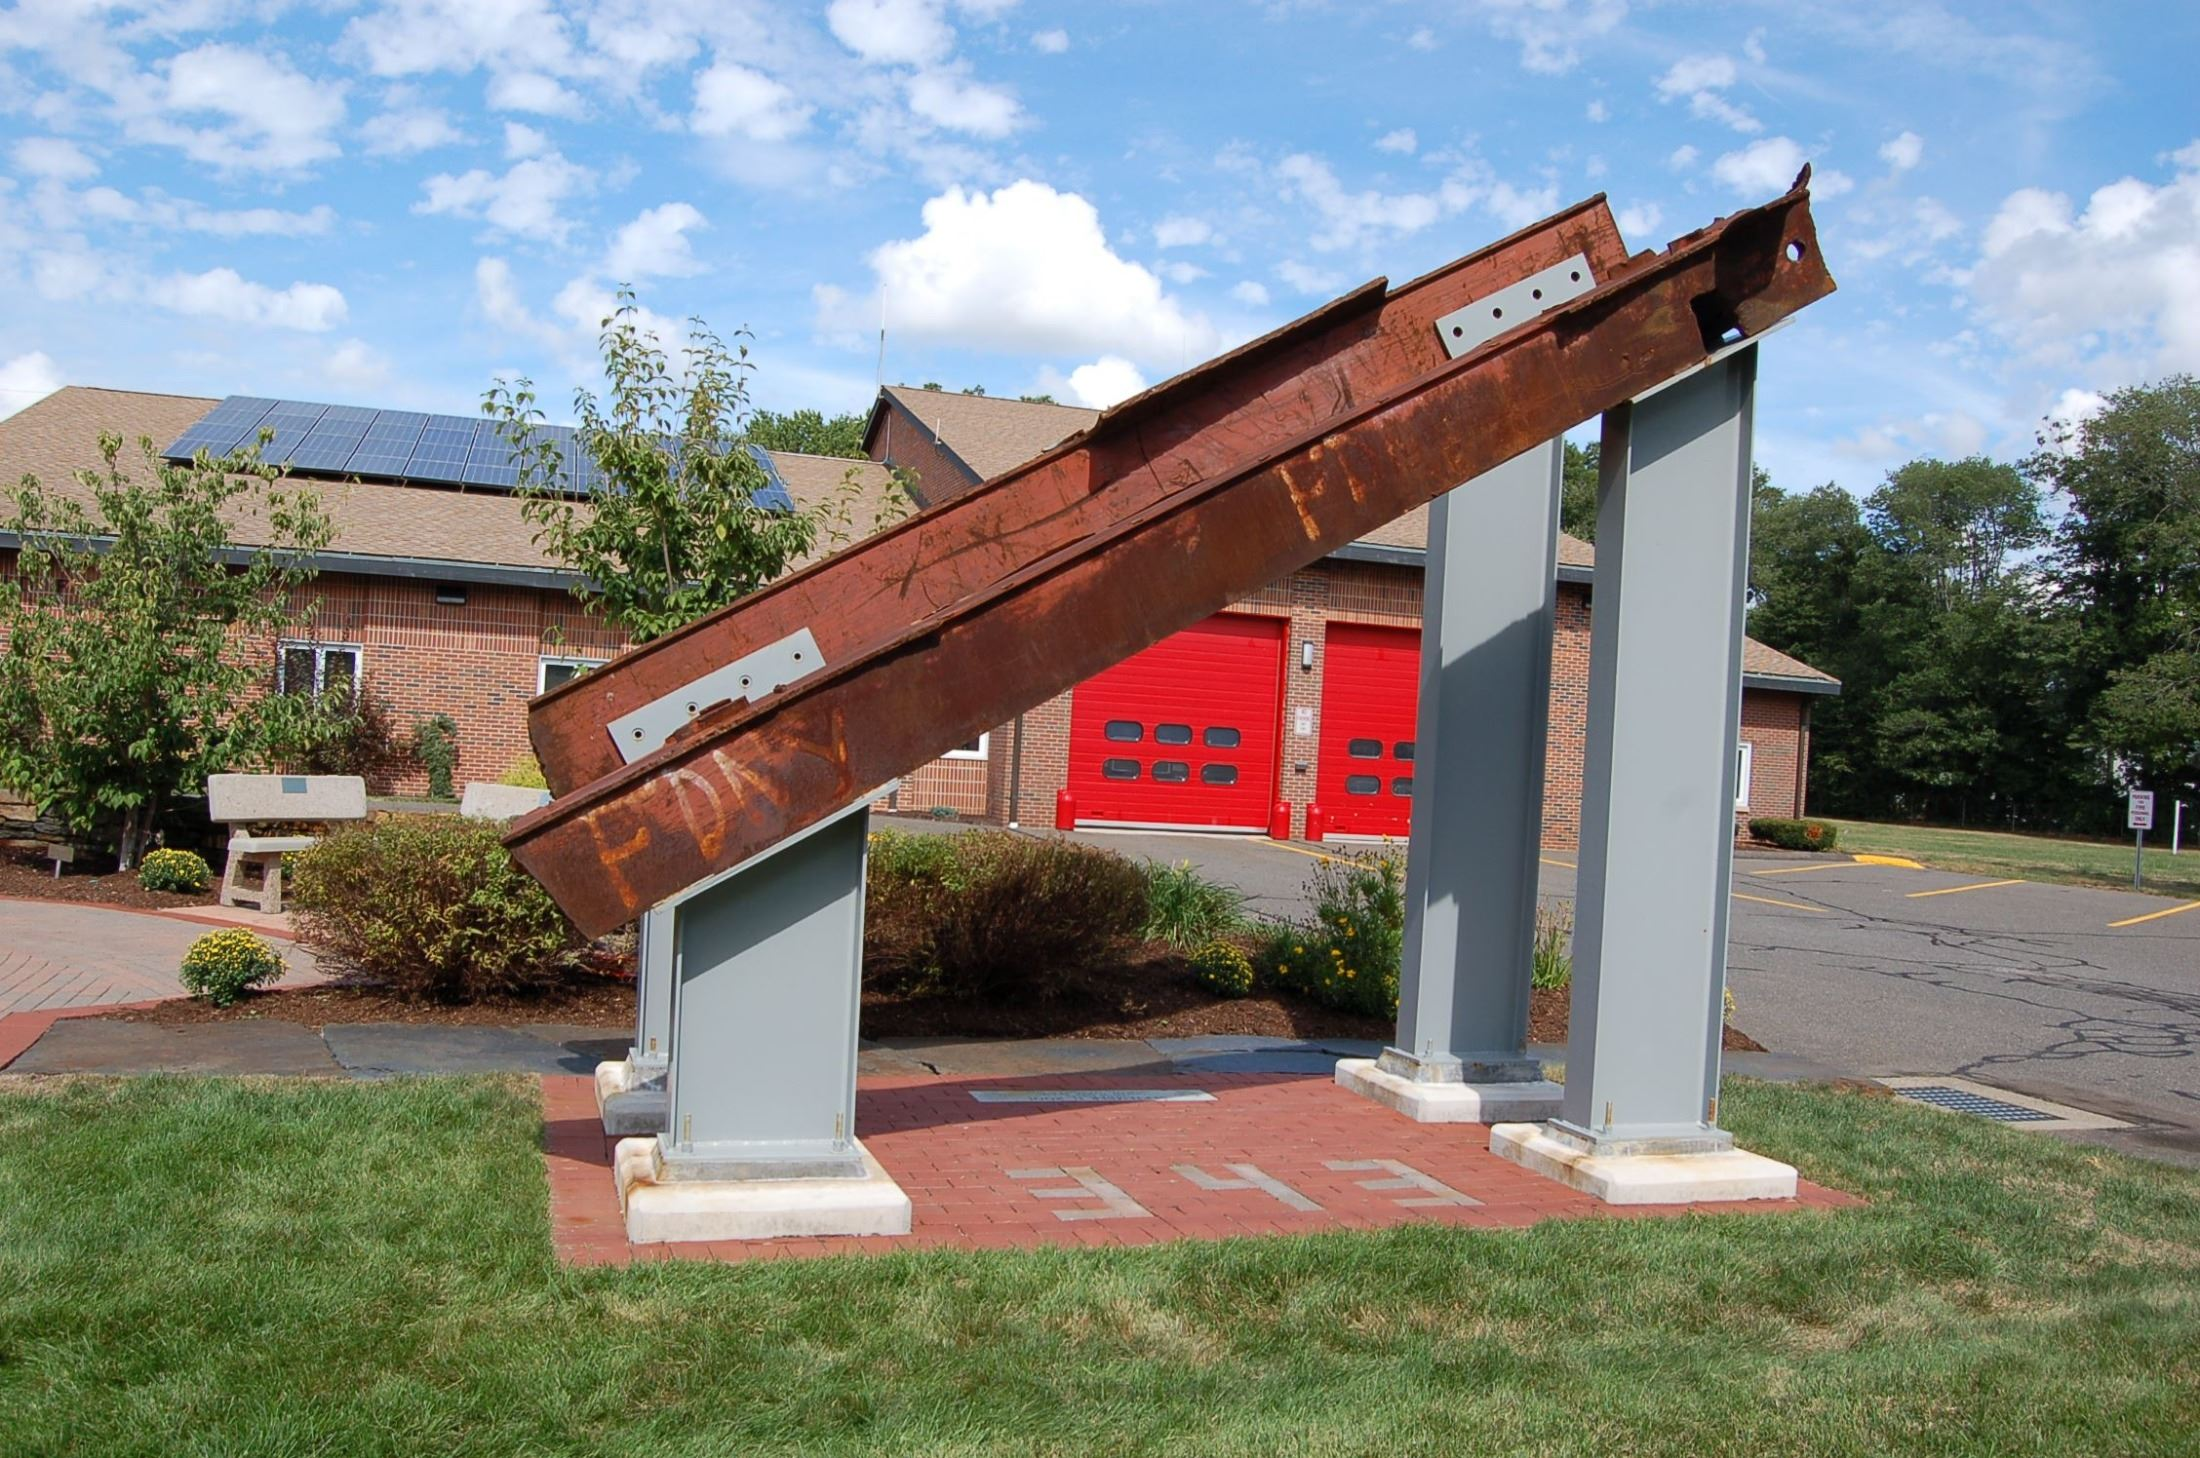 WTC beams now at the 911 Memorial Garden at Enfield Fire Station #2